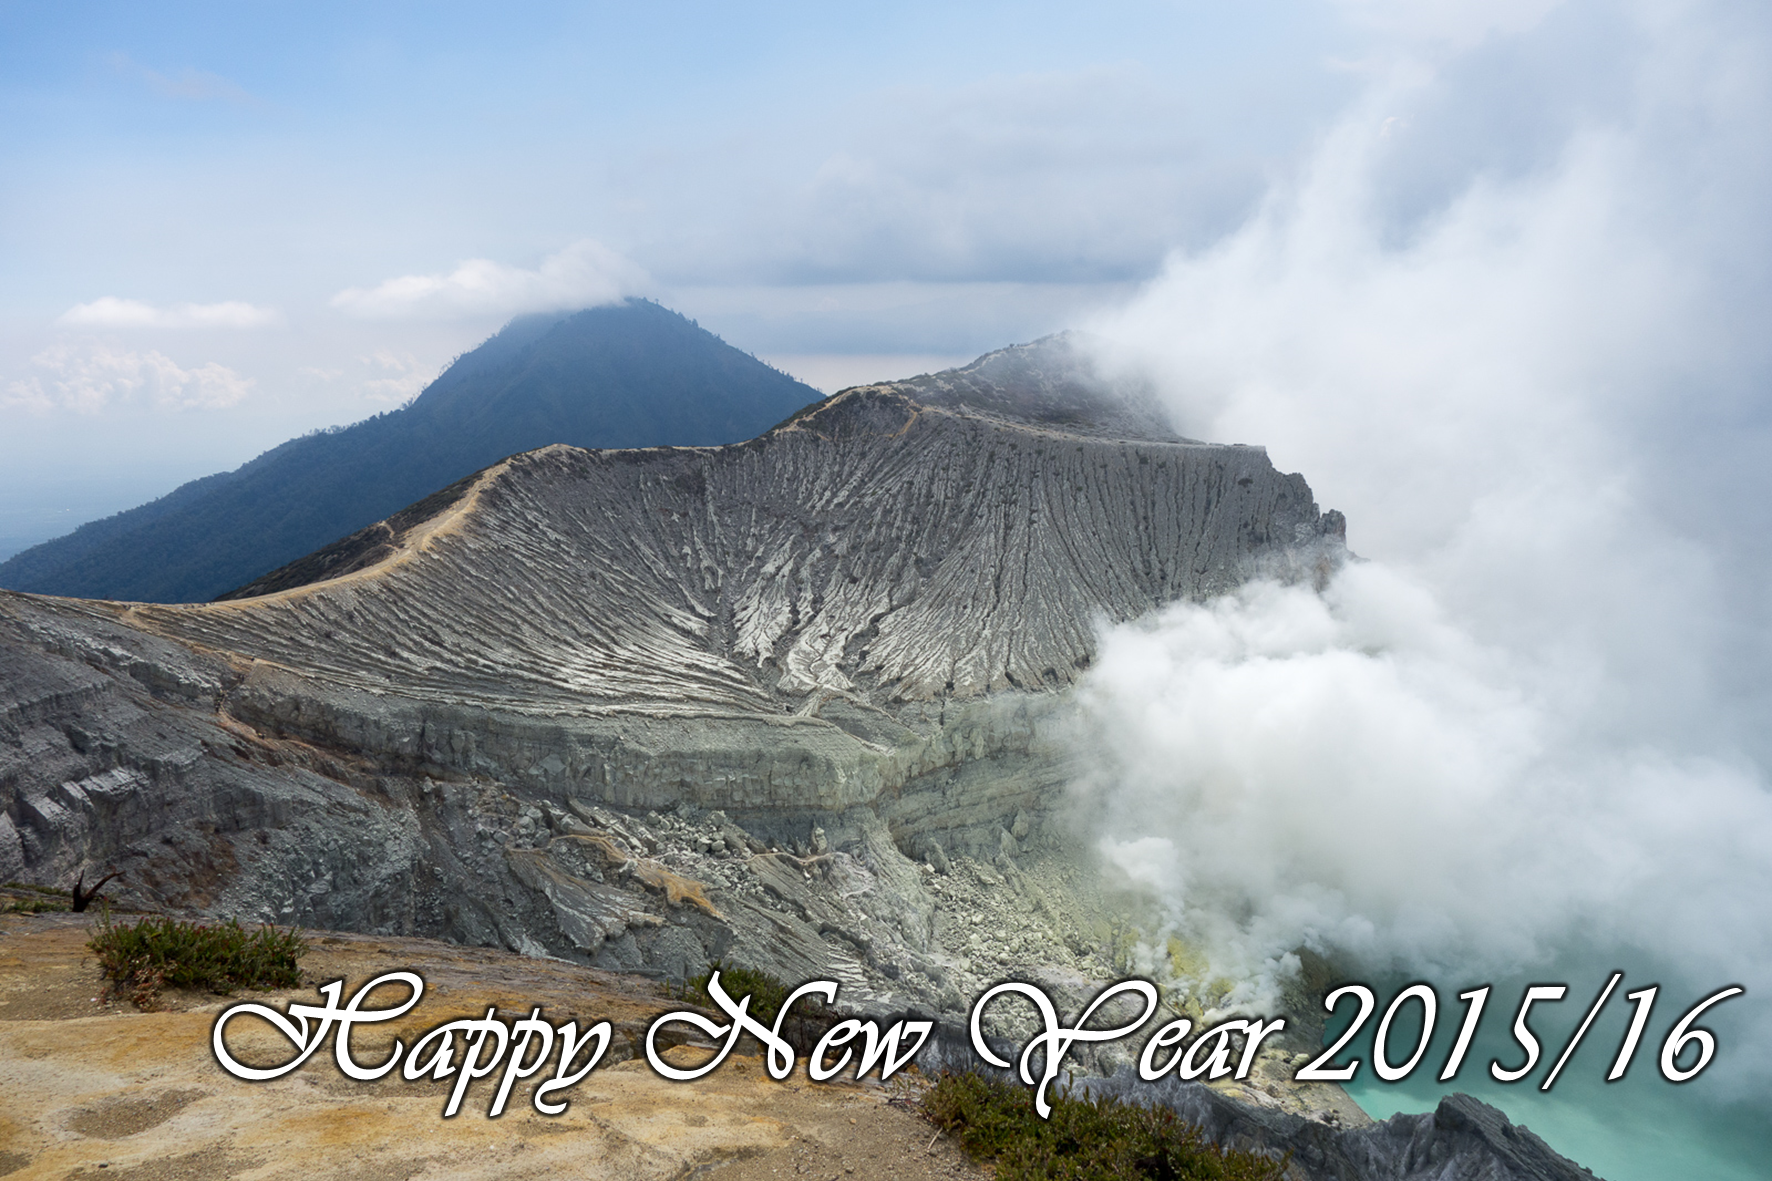 Happy New Year 2015/16